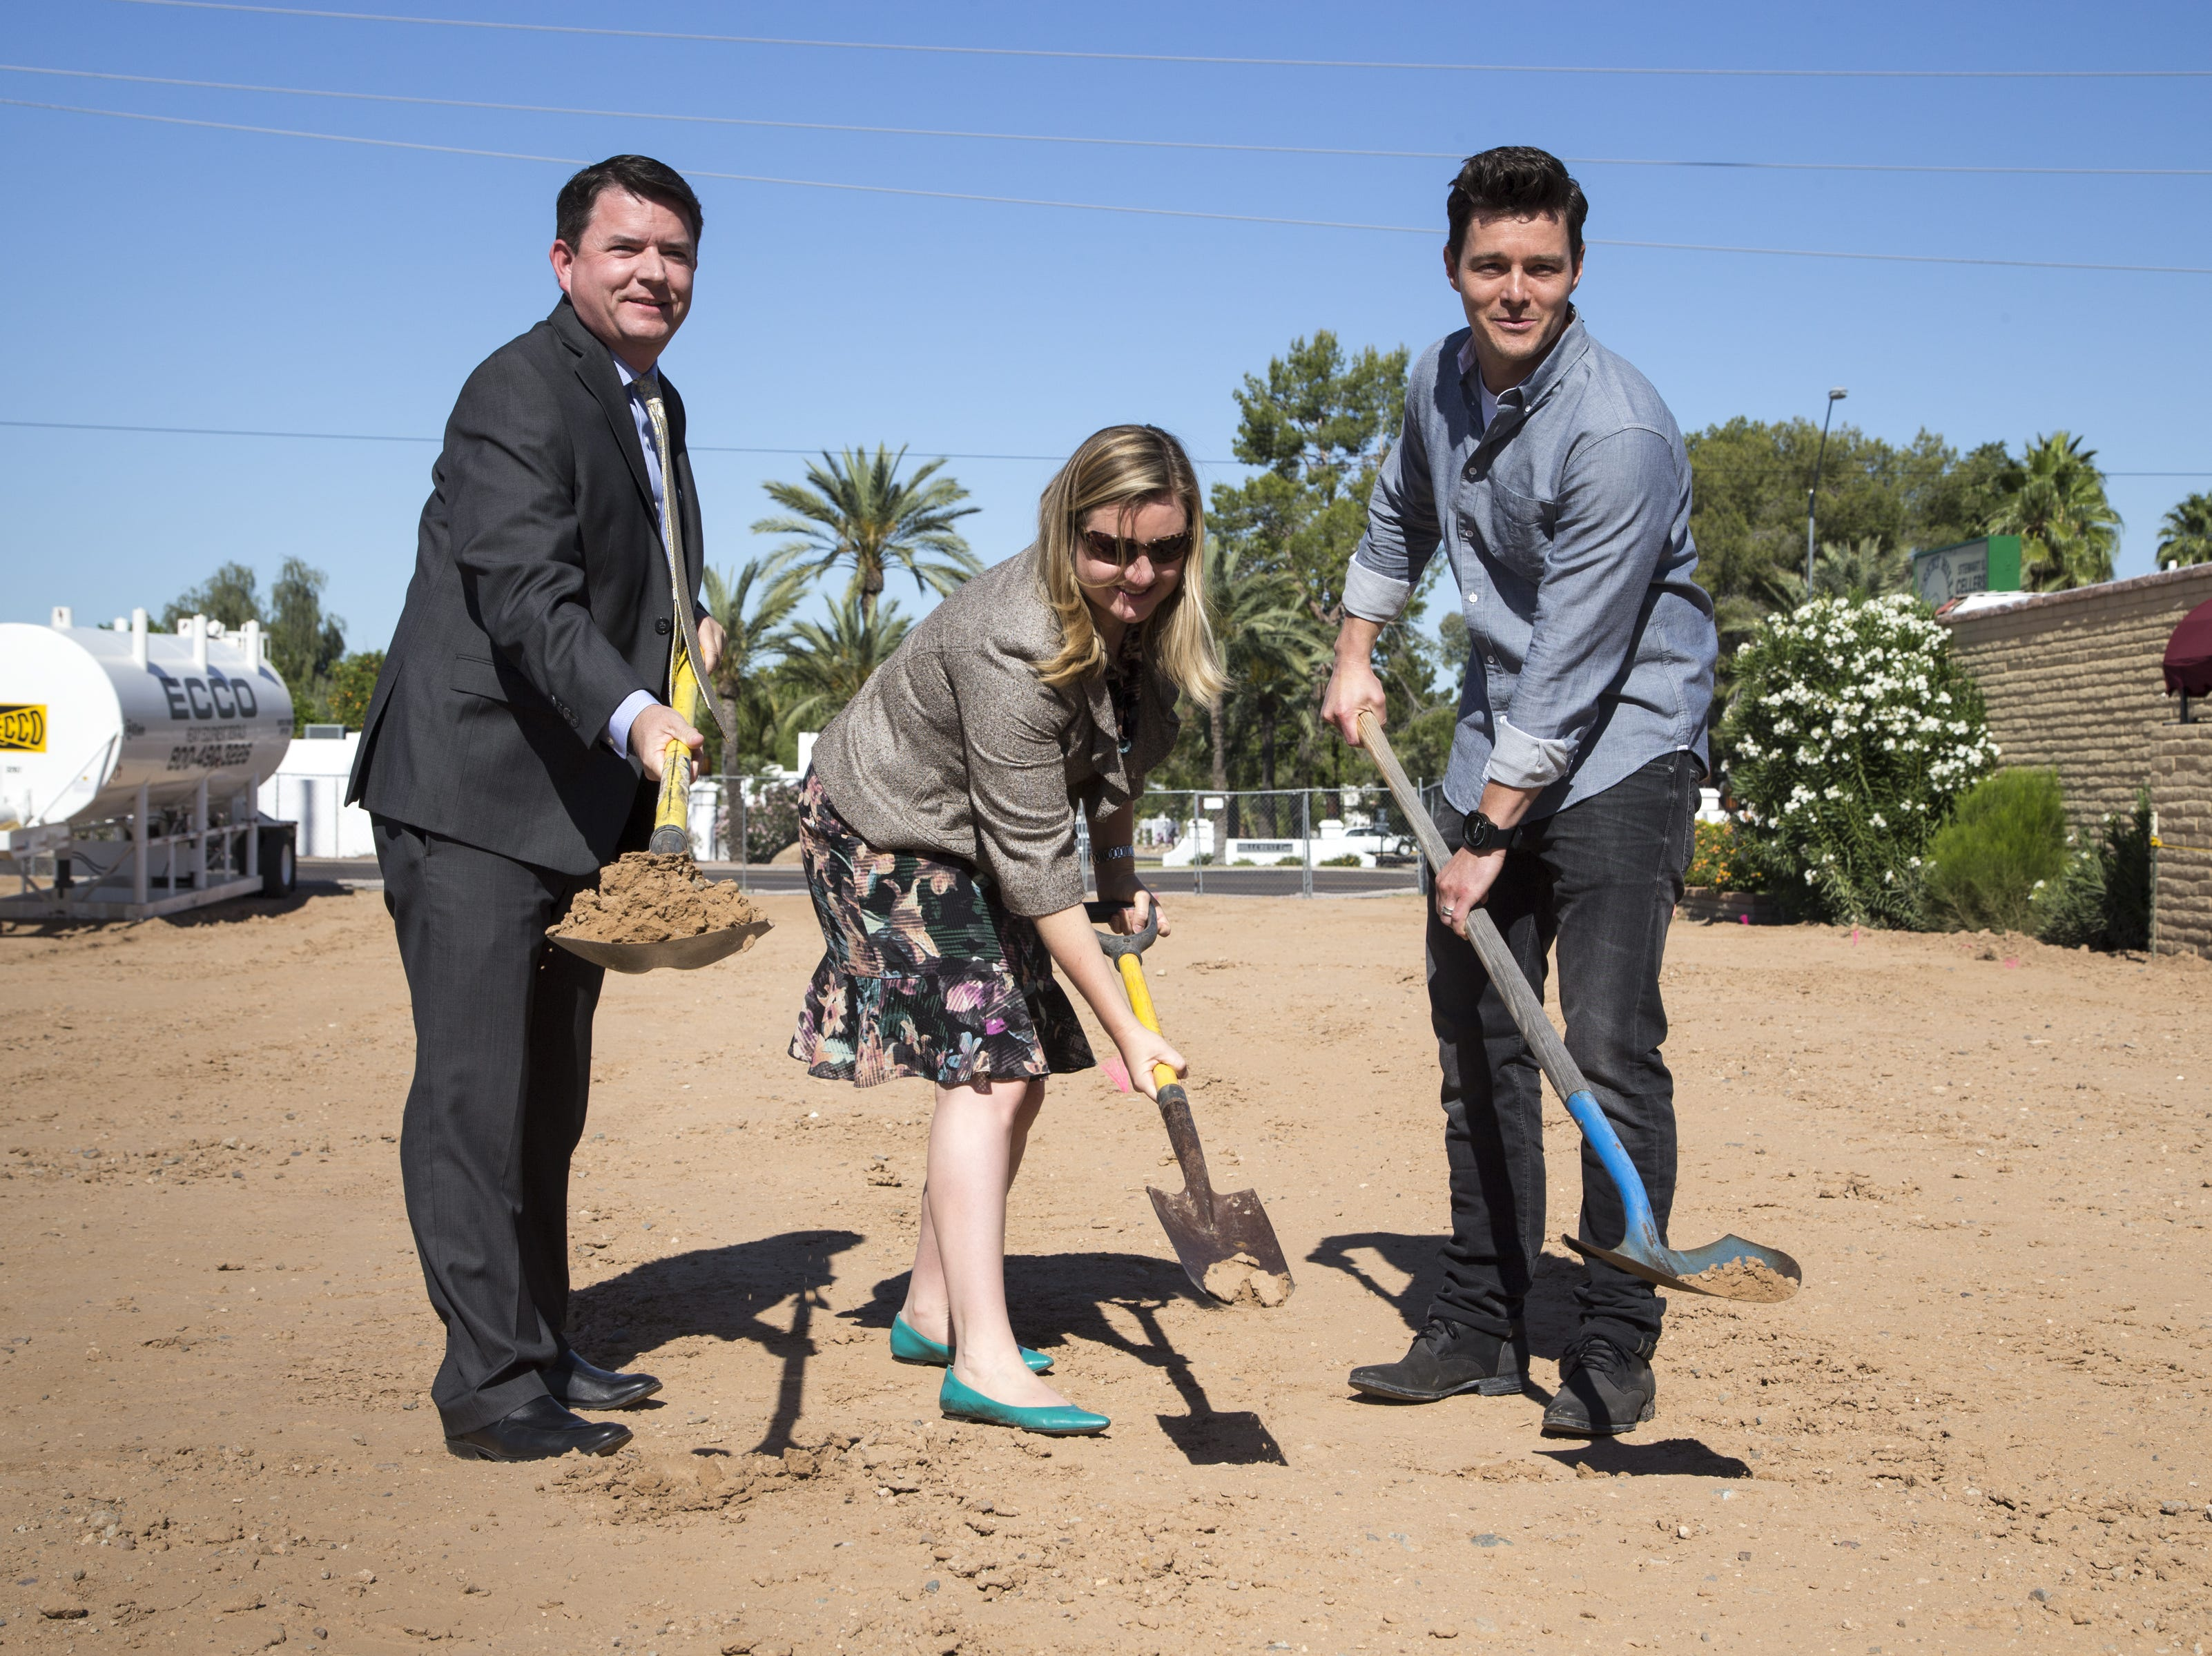 Mark Henle/The Republic Phoenix City Councilman Bill Gates (left), Vice Mayor Kate Gallego (center) and Justin Johnson break ground May 9 during a ceremony to kick off Johnson?s new development, Encanto Living Moon Valley, 710 E. Roberts Road, Phoenix. Phoenix City Councilman Bill Gates (left), Vice Mayor Kate Gallego (center) and Justin Johnson break ground, May 9, 2016, during a ceremony for Johnson's new development, Encanto Living Moon Valley, 710 E. Roberts Road, Phoenix, Arizona.